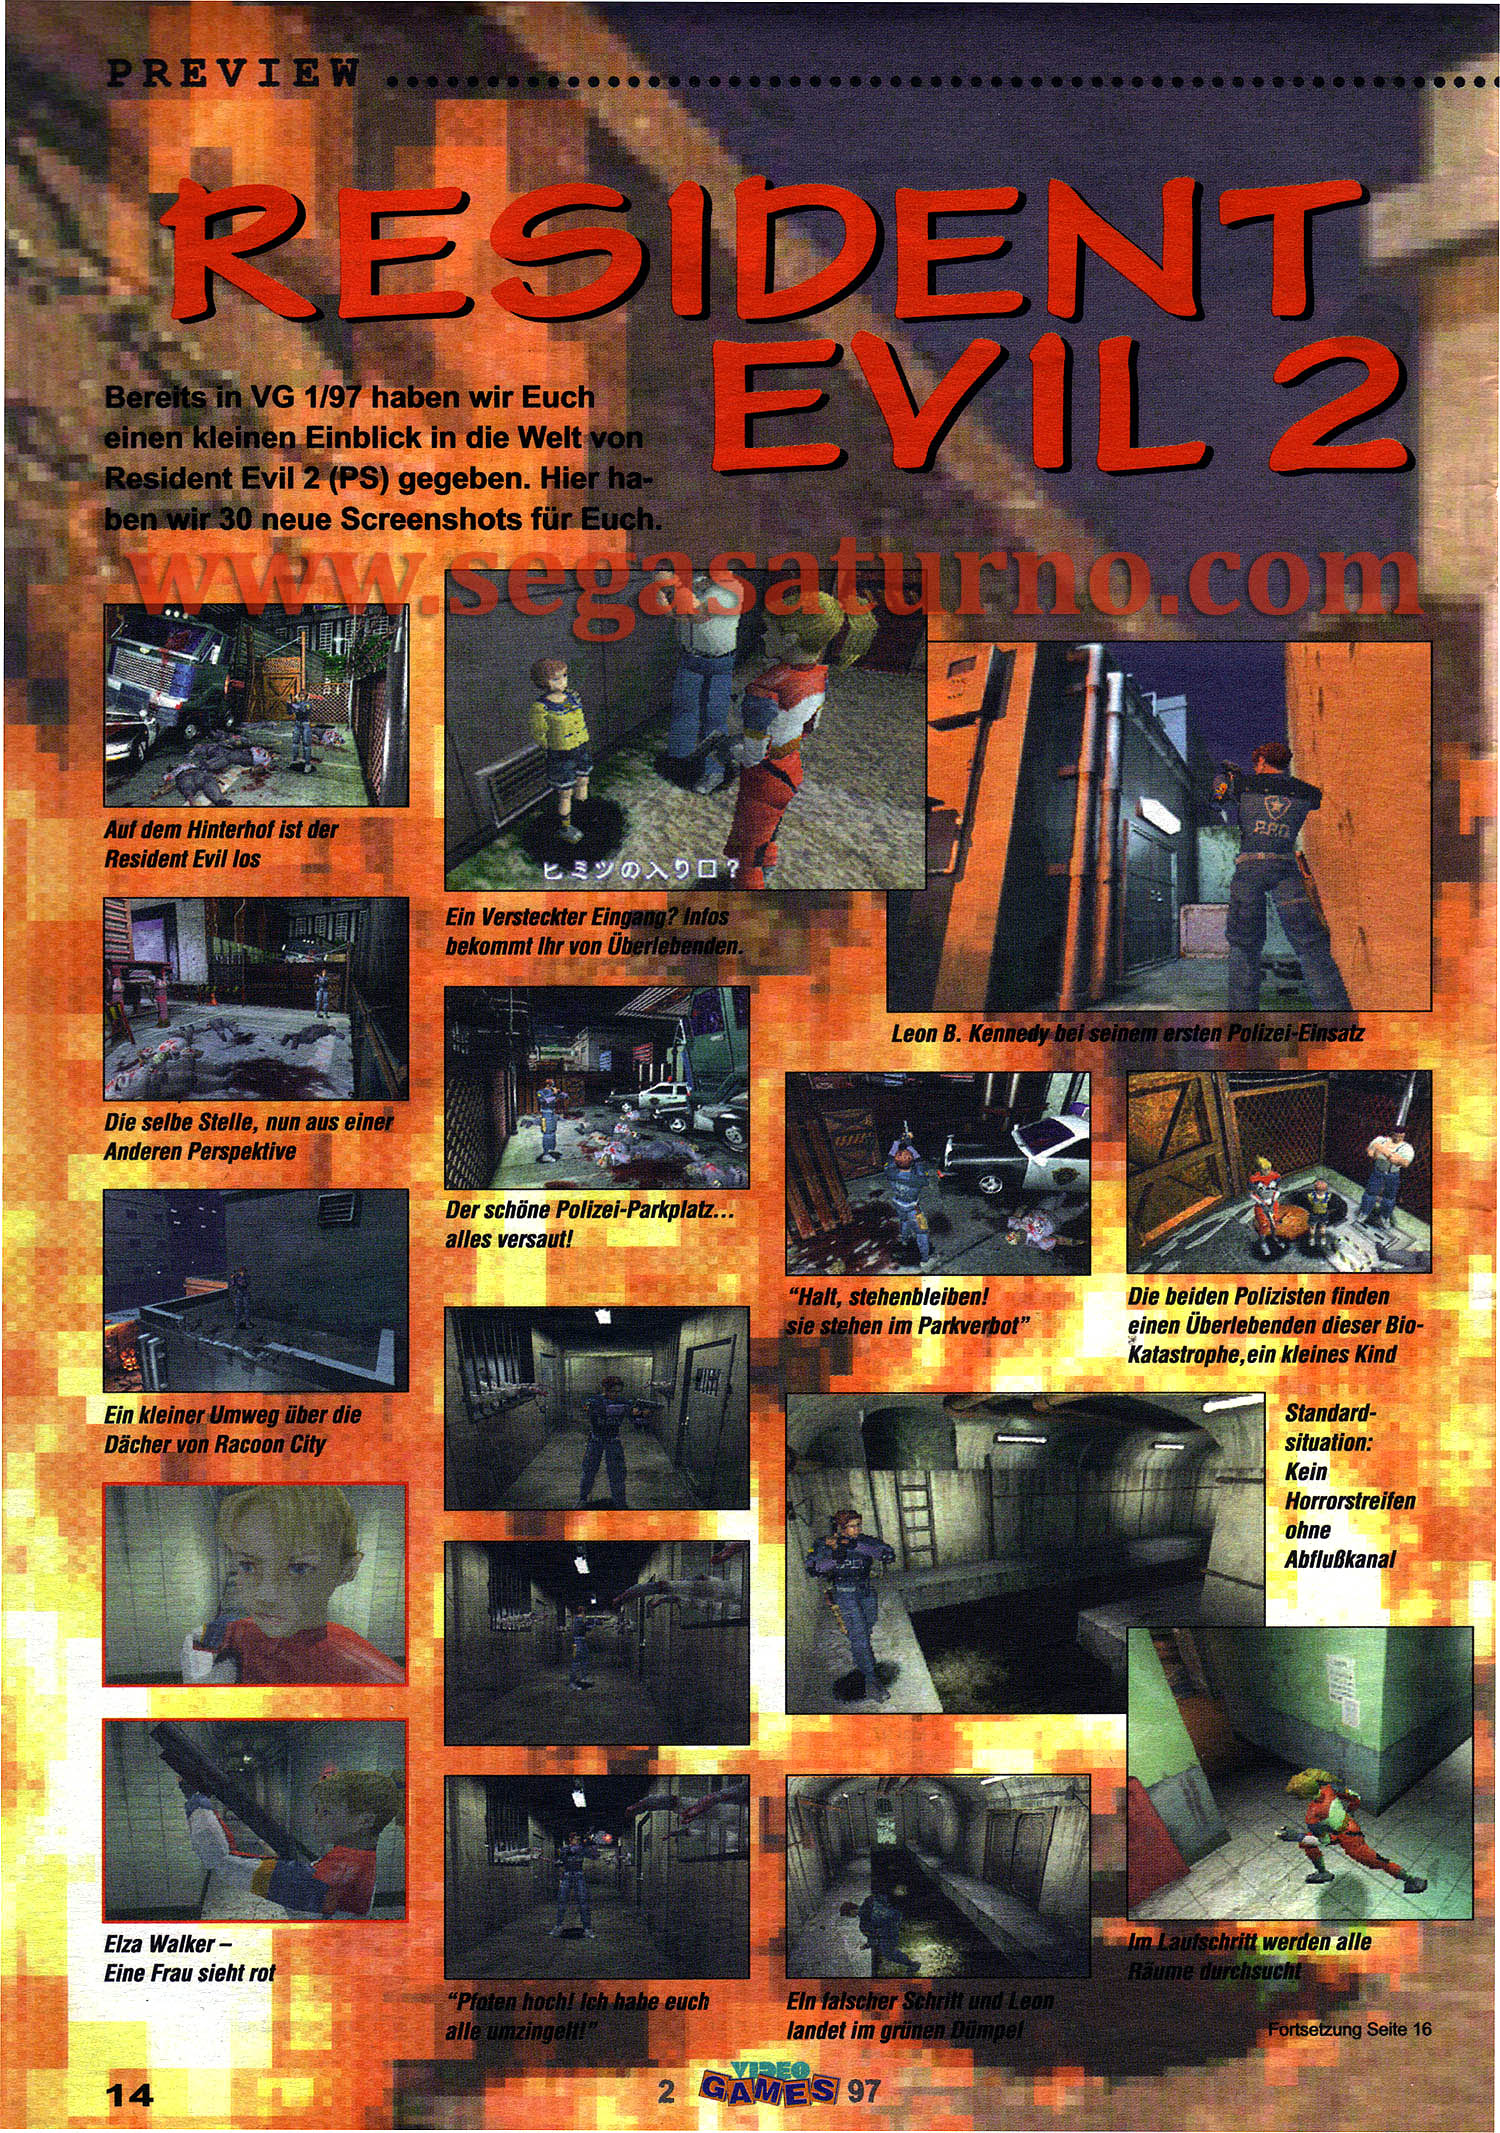 Resident Evil 2 beta 1.5 unreleased scan